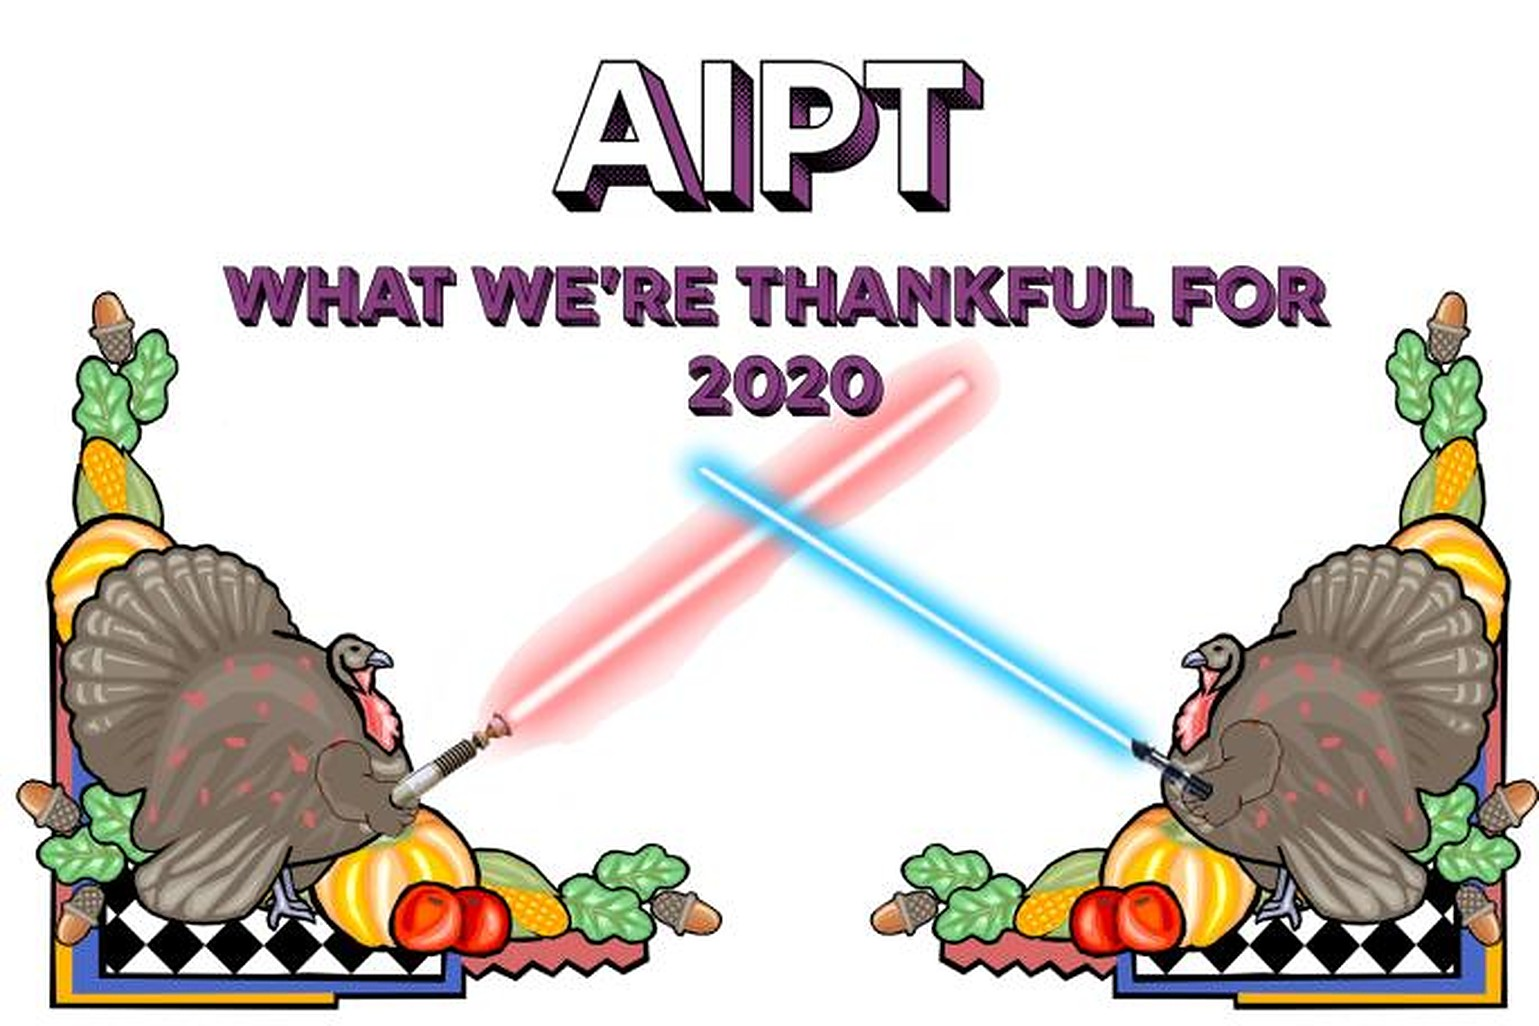 What we're thankful for in 2020